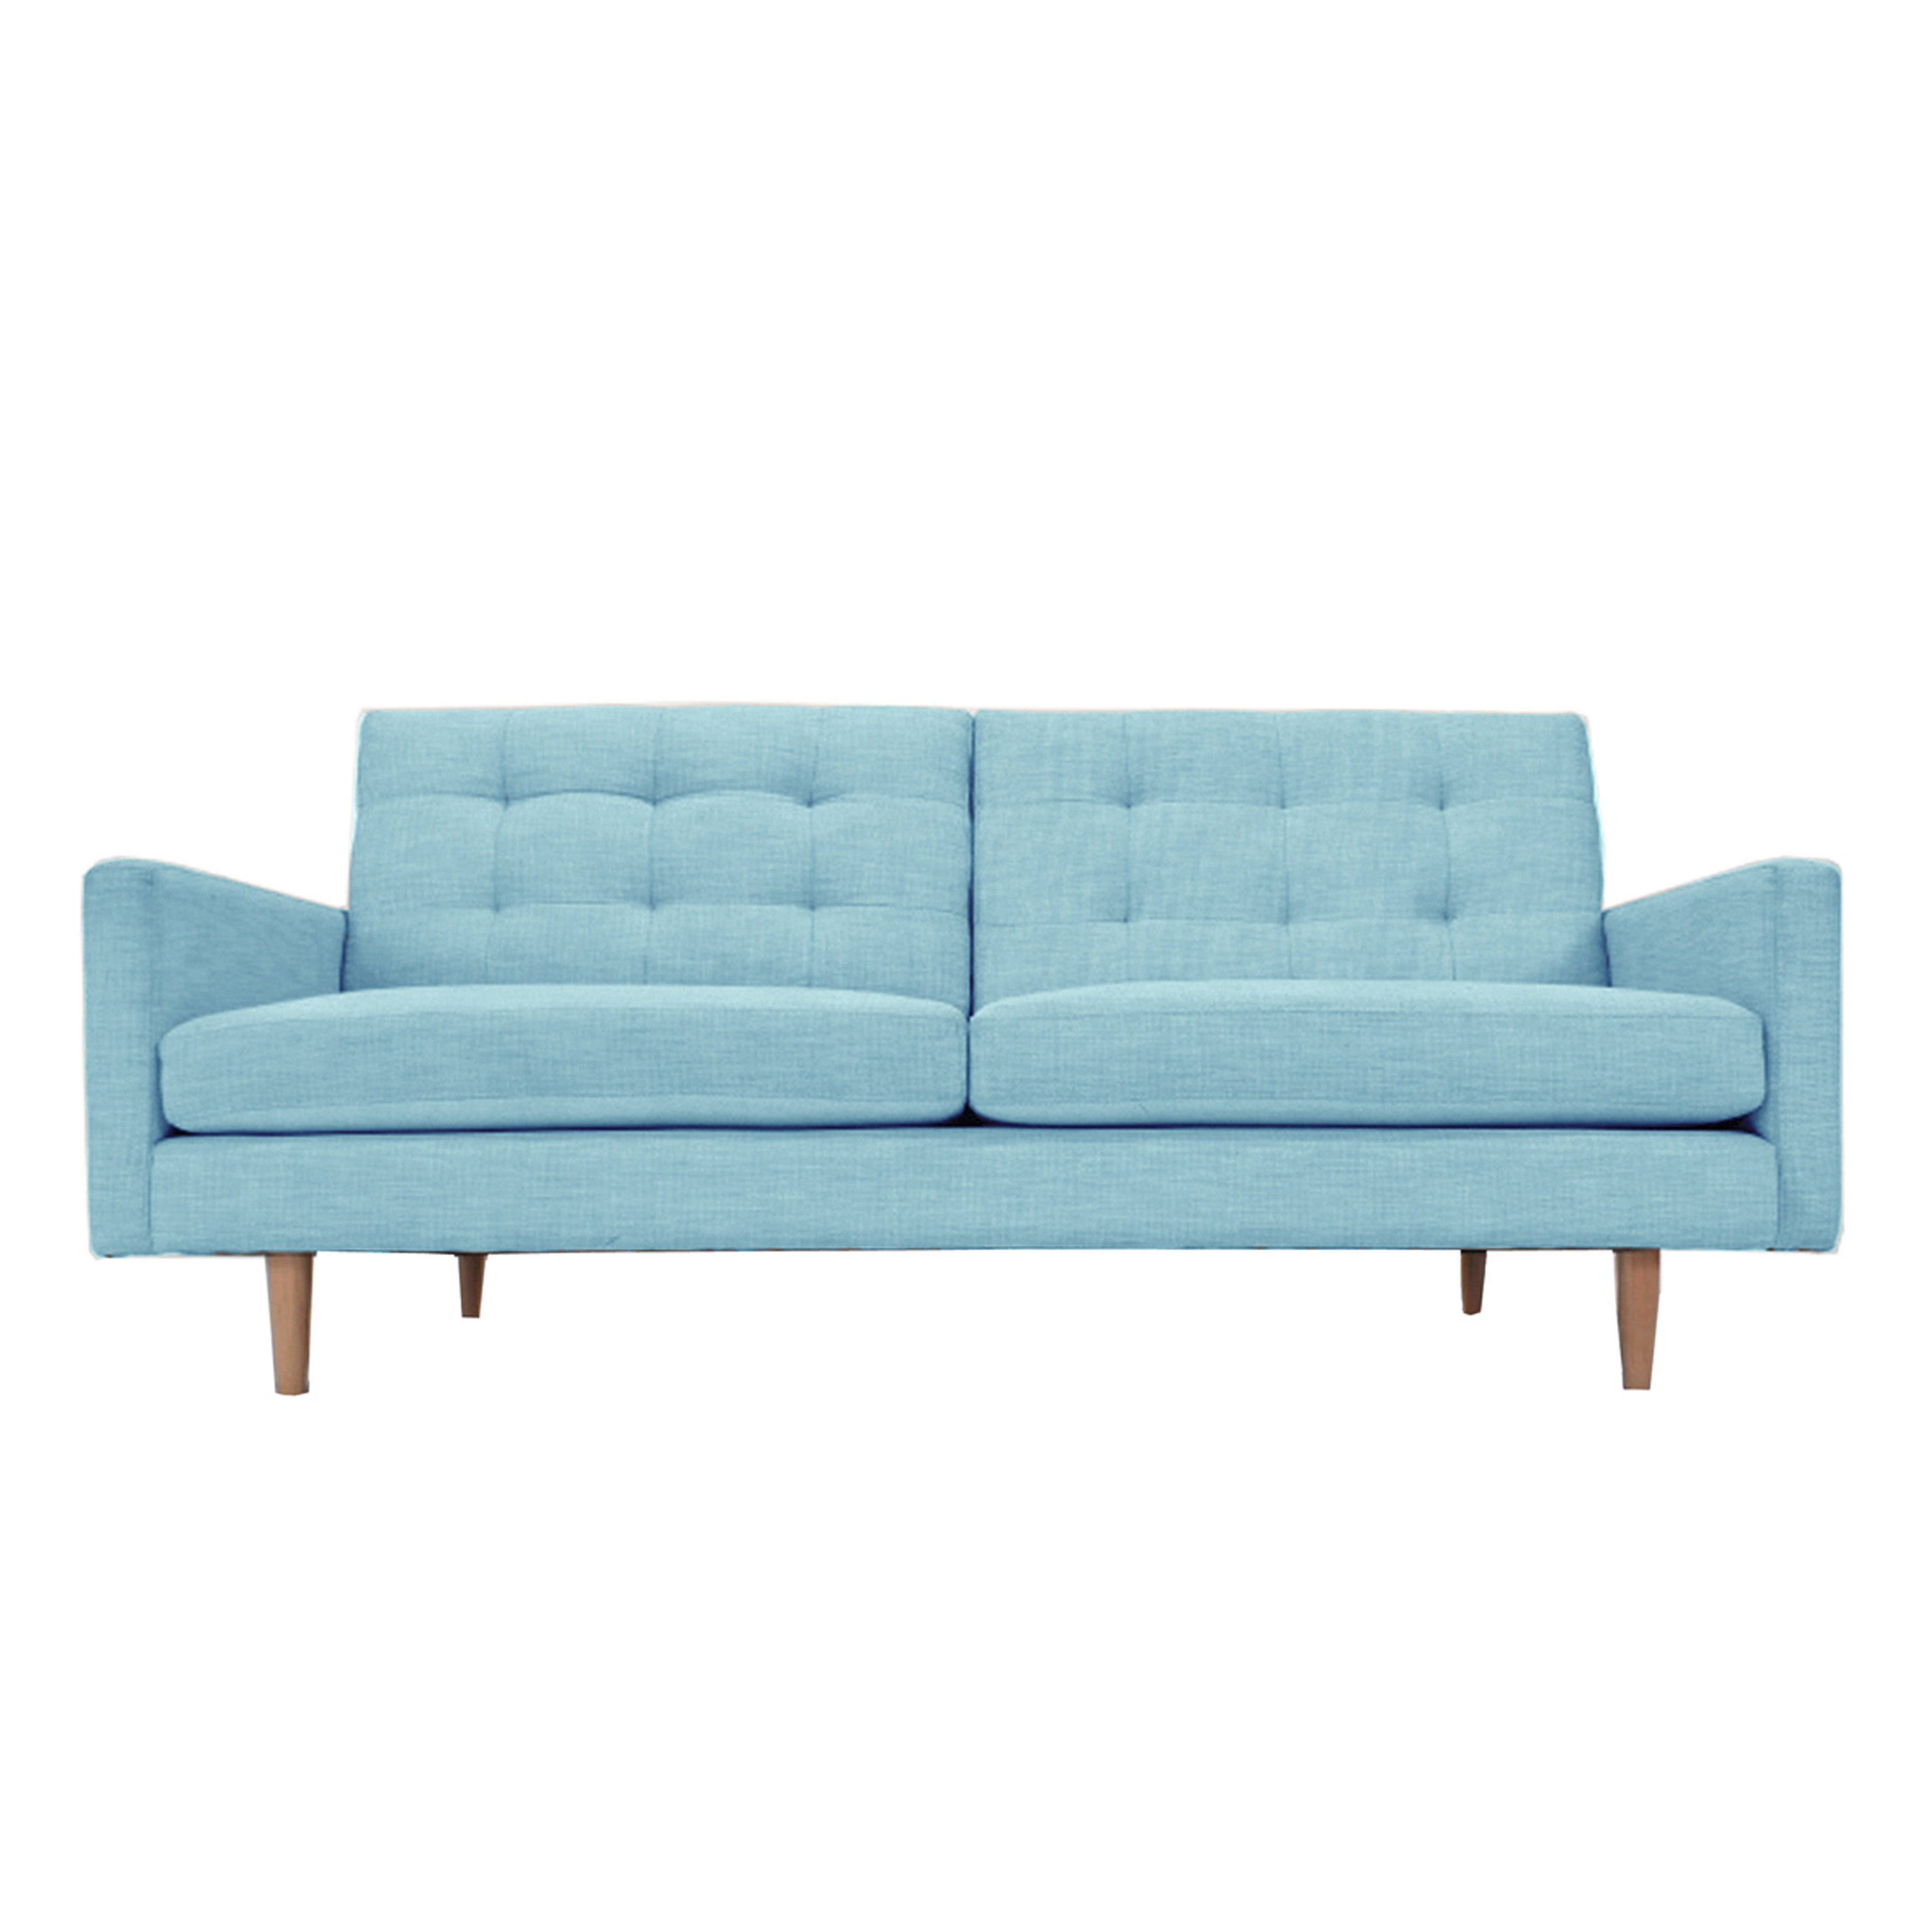 Lawrence Mid-Century Modern Eco-Friendly Sofa